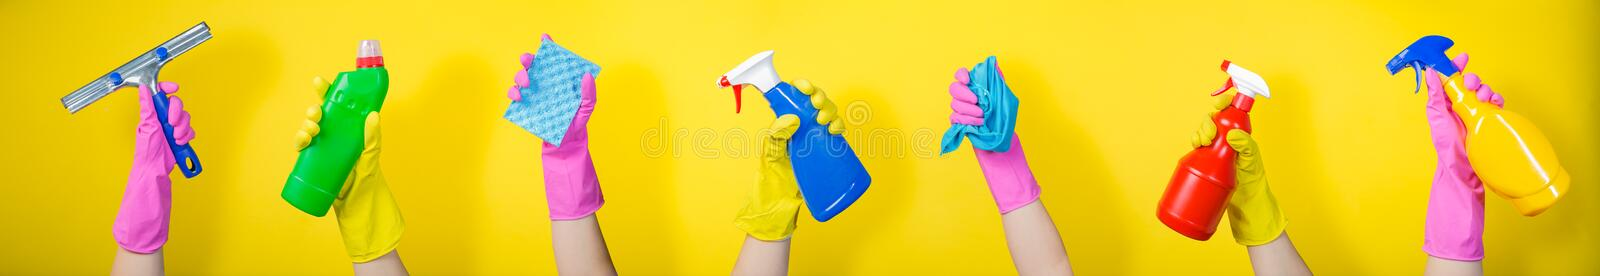 Cleaning concept - hands holding supplies on bright background royalty free stock photo